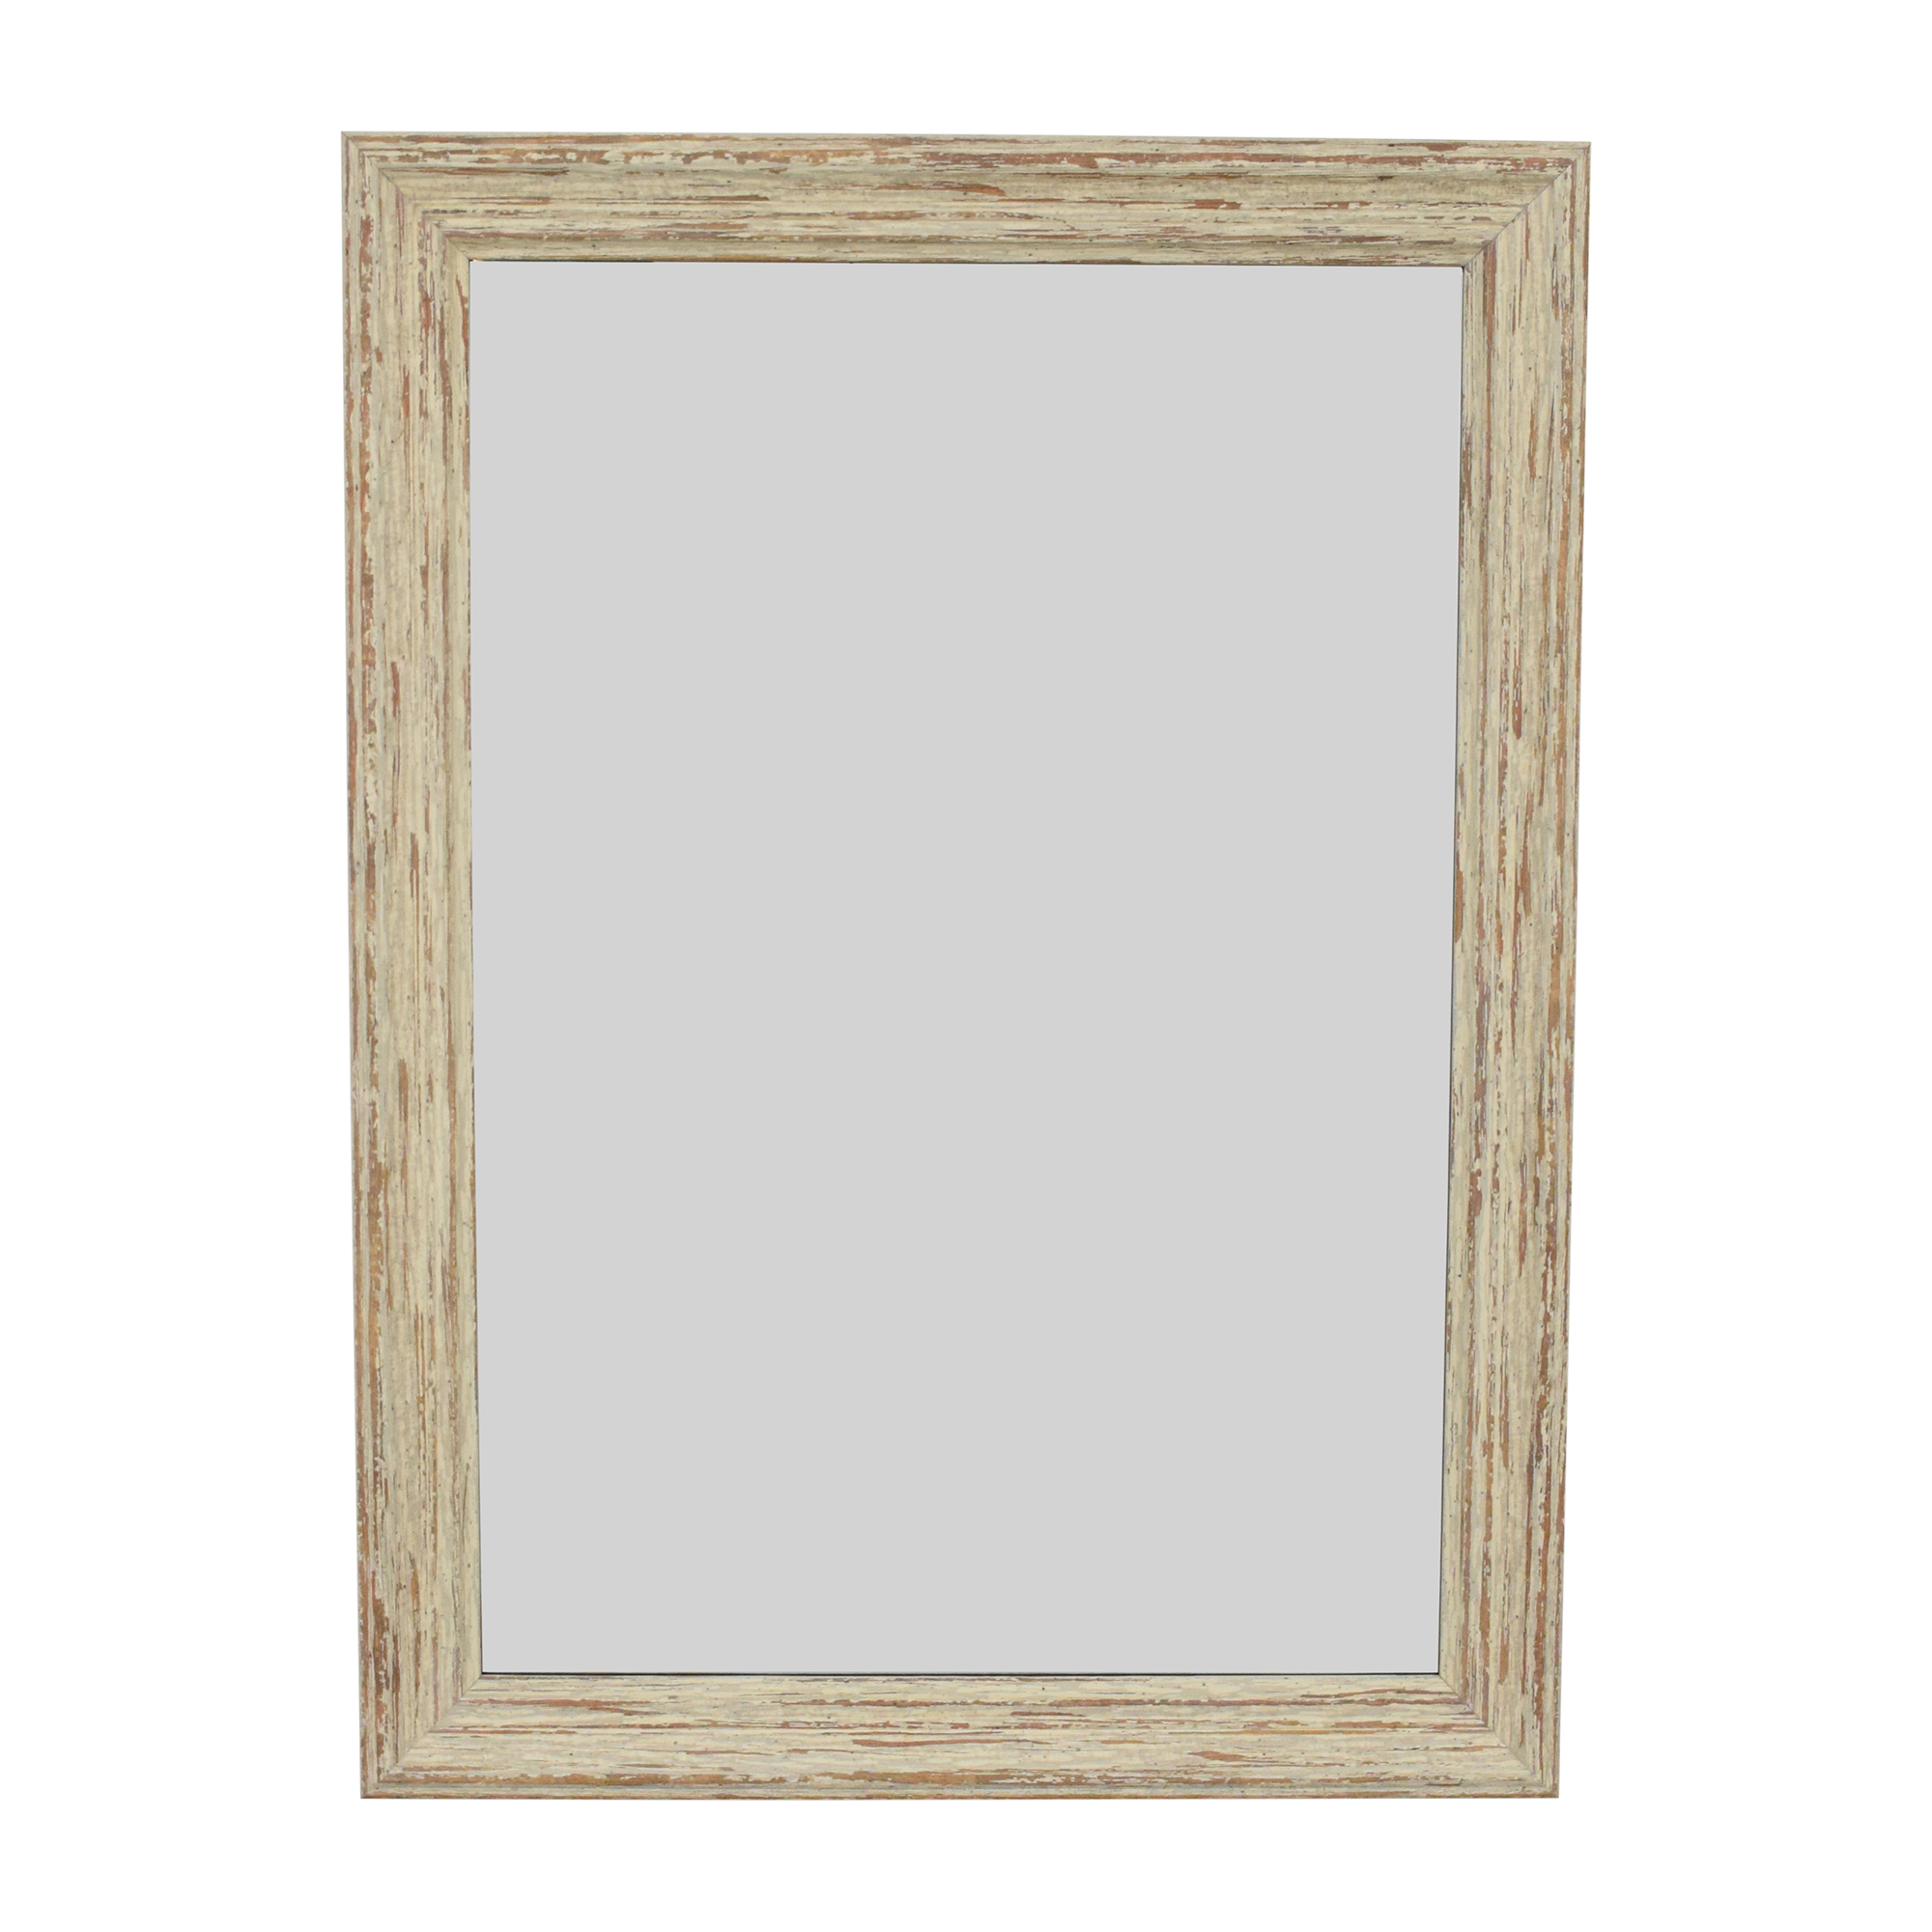 Shabby Chic Style Wall Mirror